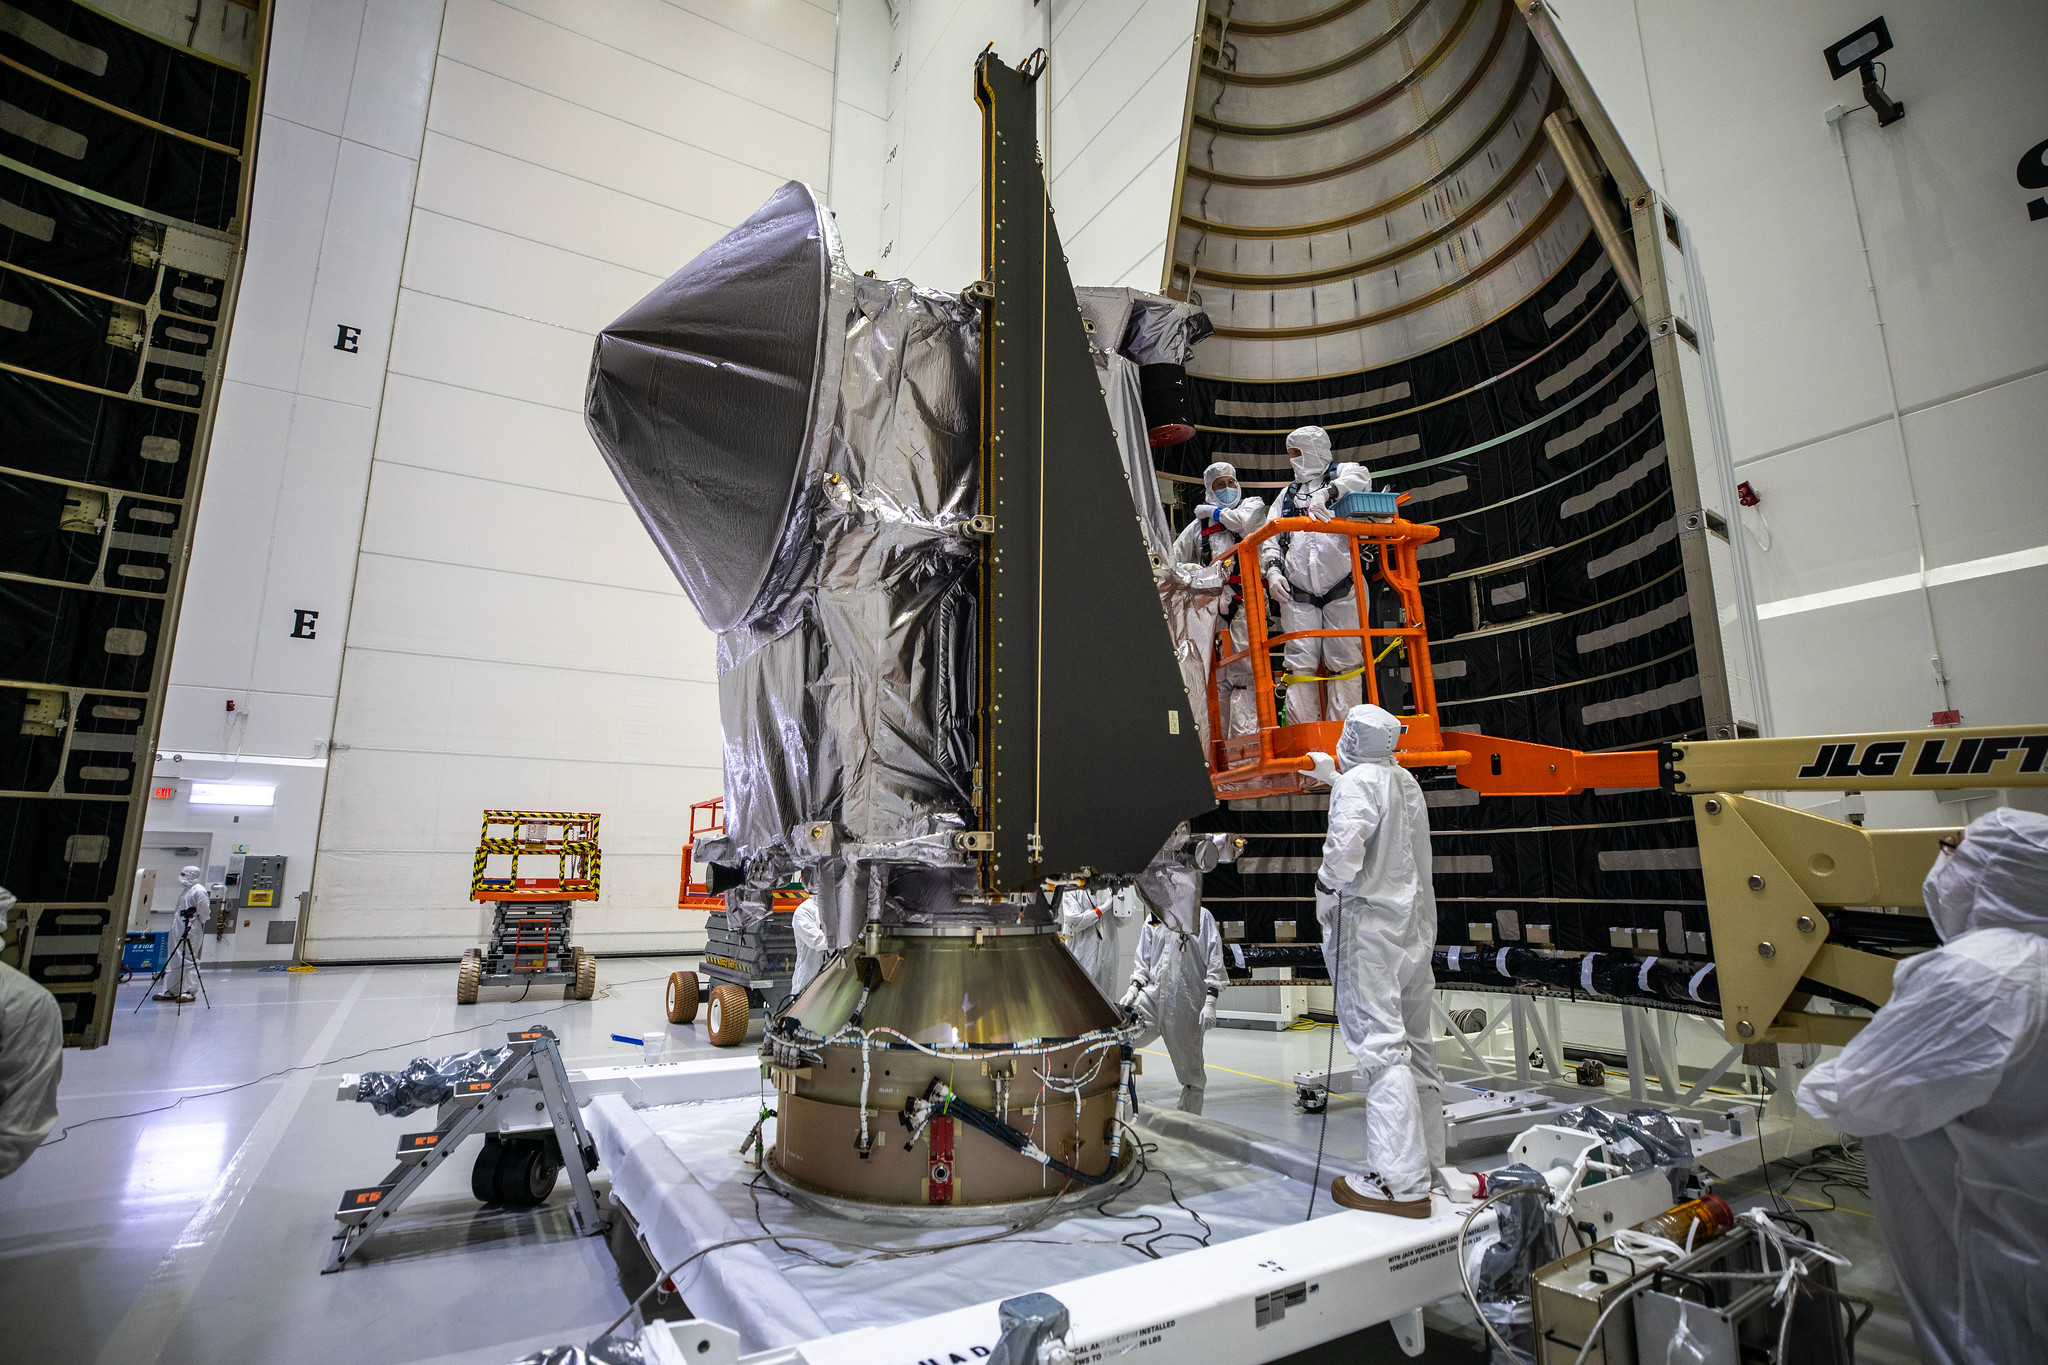 NASA's asteroid spacecraft Lucy launches this week on bold 12-year mission thumbnail